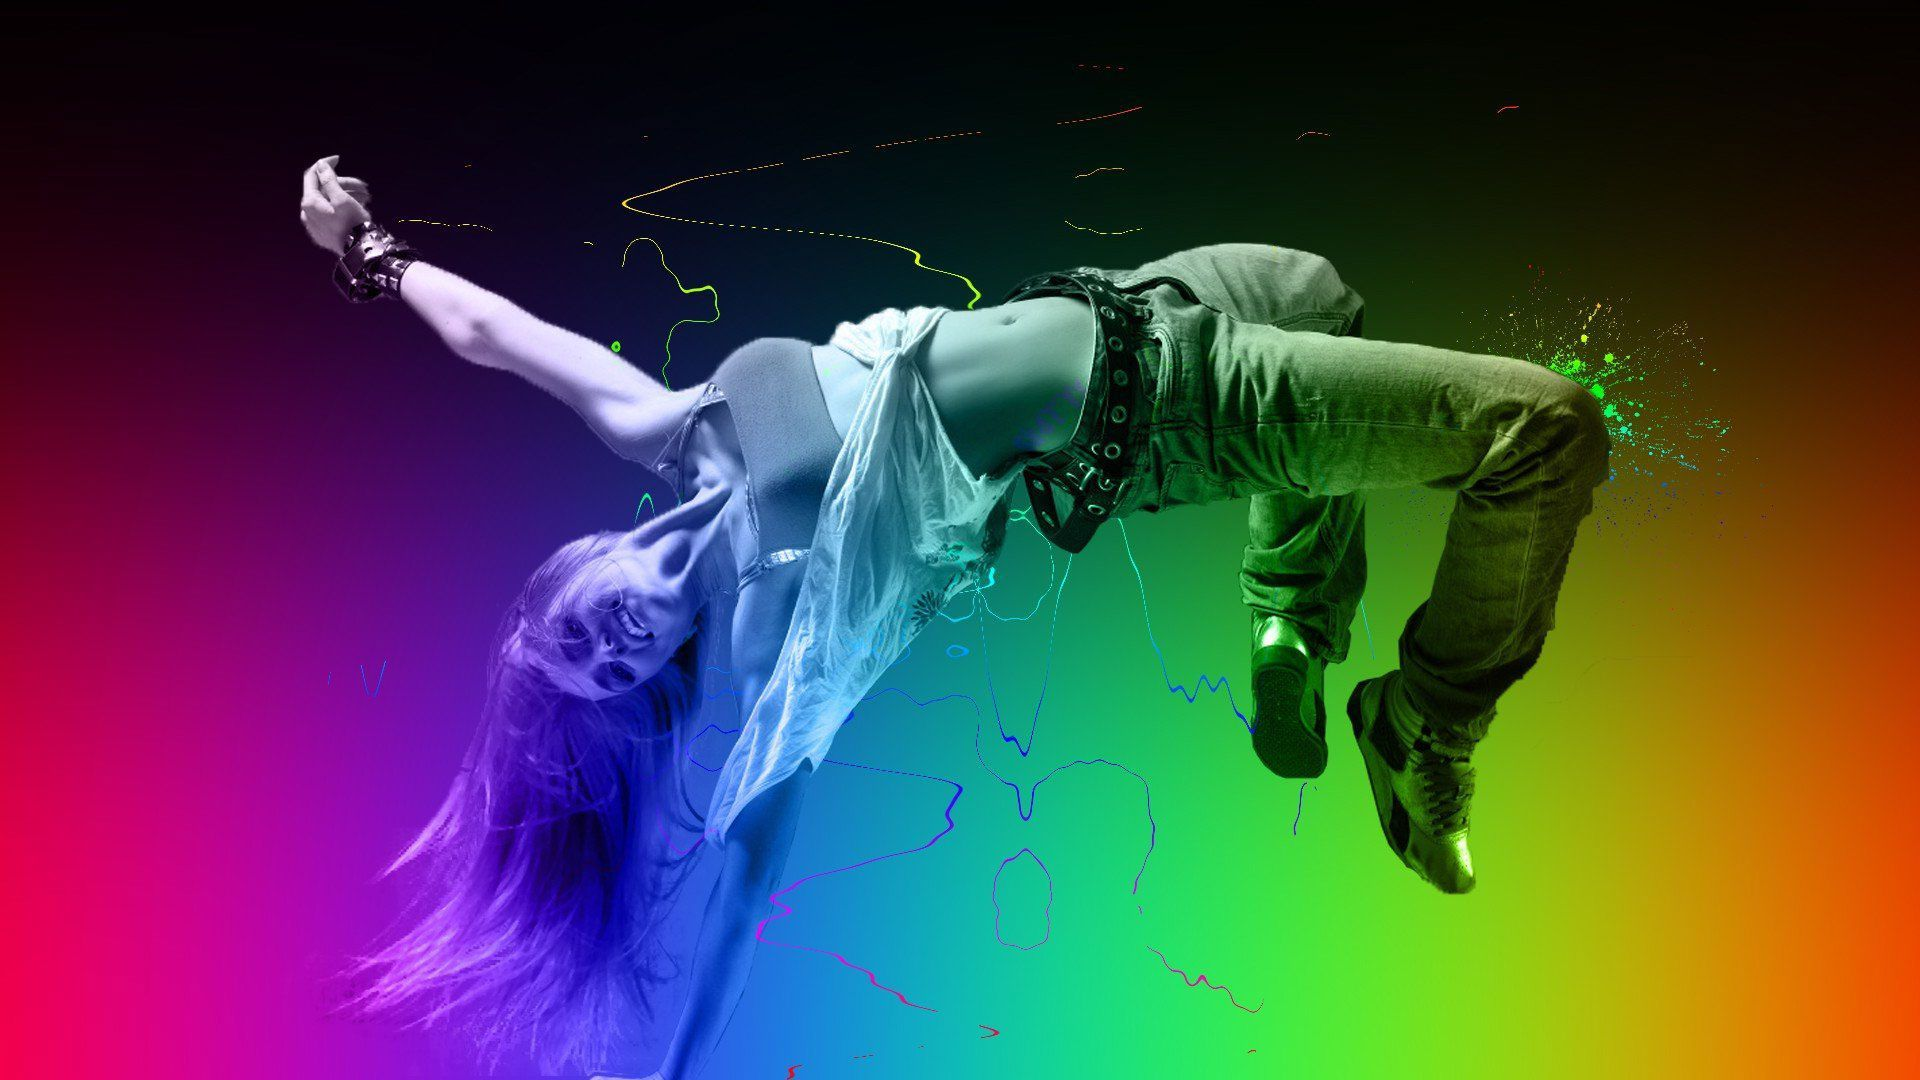 Abstract Dance Wallpapers   Top Abstract Dance Backgrounds 1920x1080